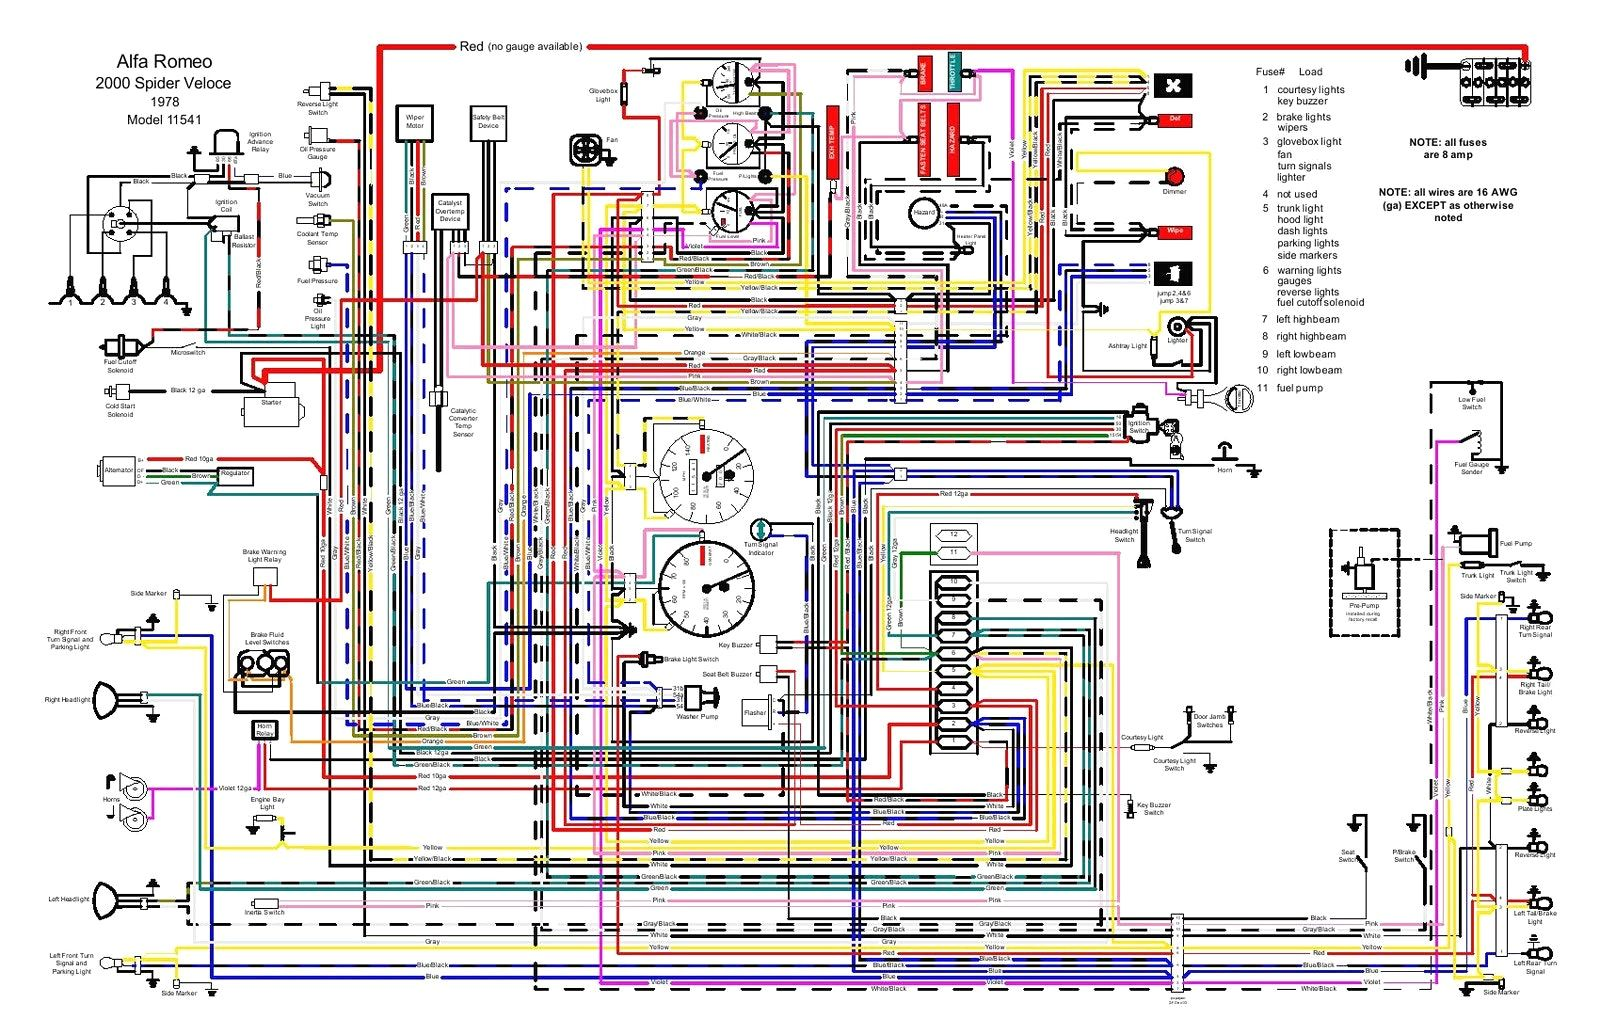 Alfa 156 Wiring Diagram Webtor Me New Electrical Wiring Diagram Electrical Diagram Trailer Wiring Diagram